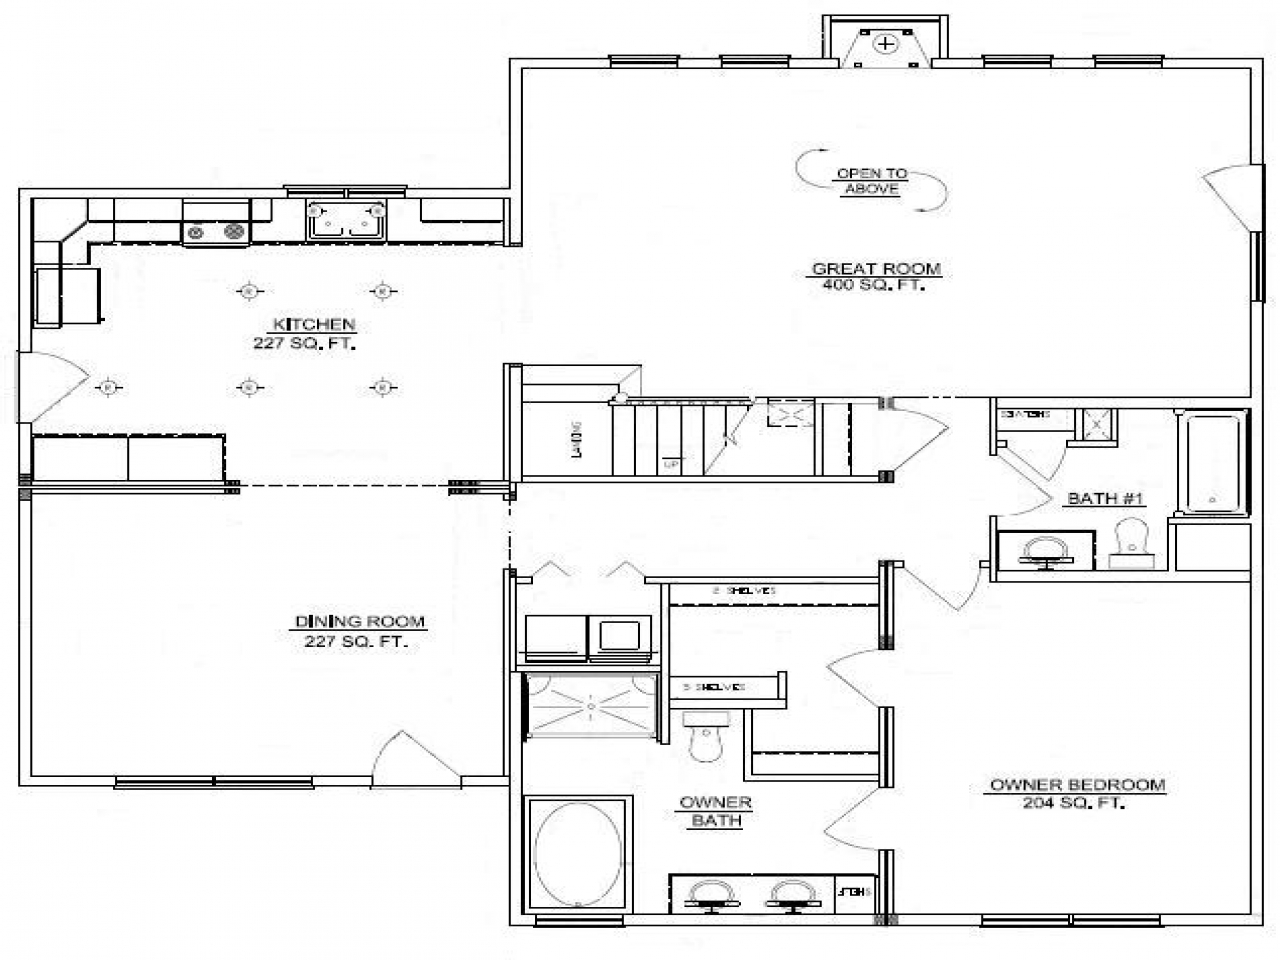 3 bedroom log cabin floor plans 3 bedroom double wide for Log cabin lodge floor plans